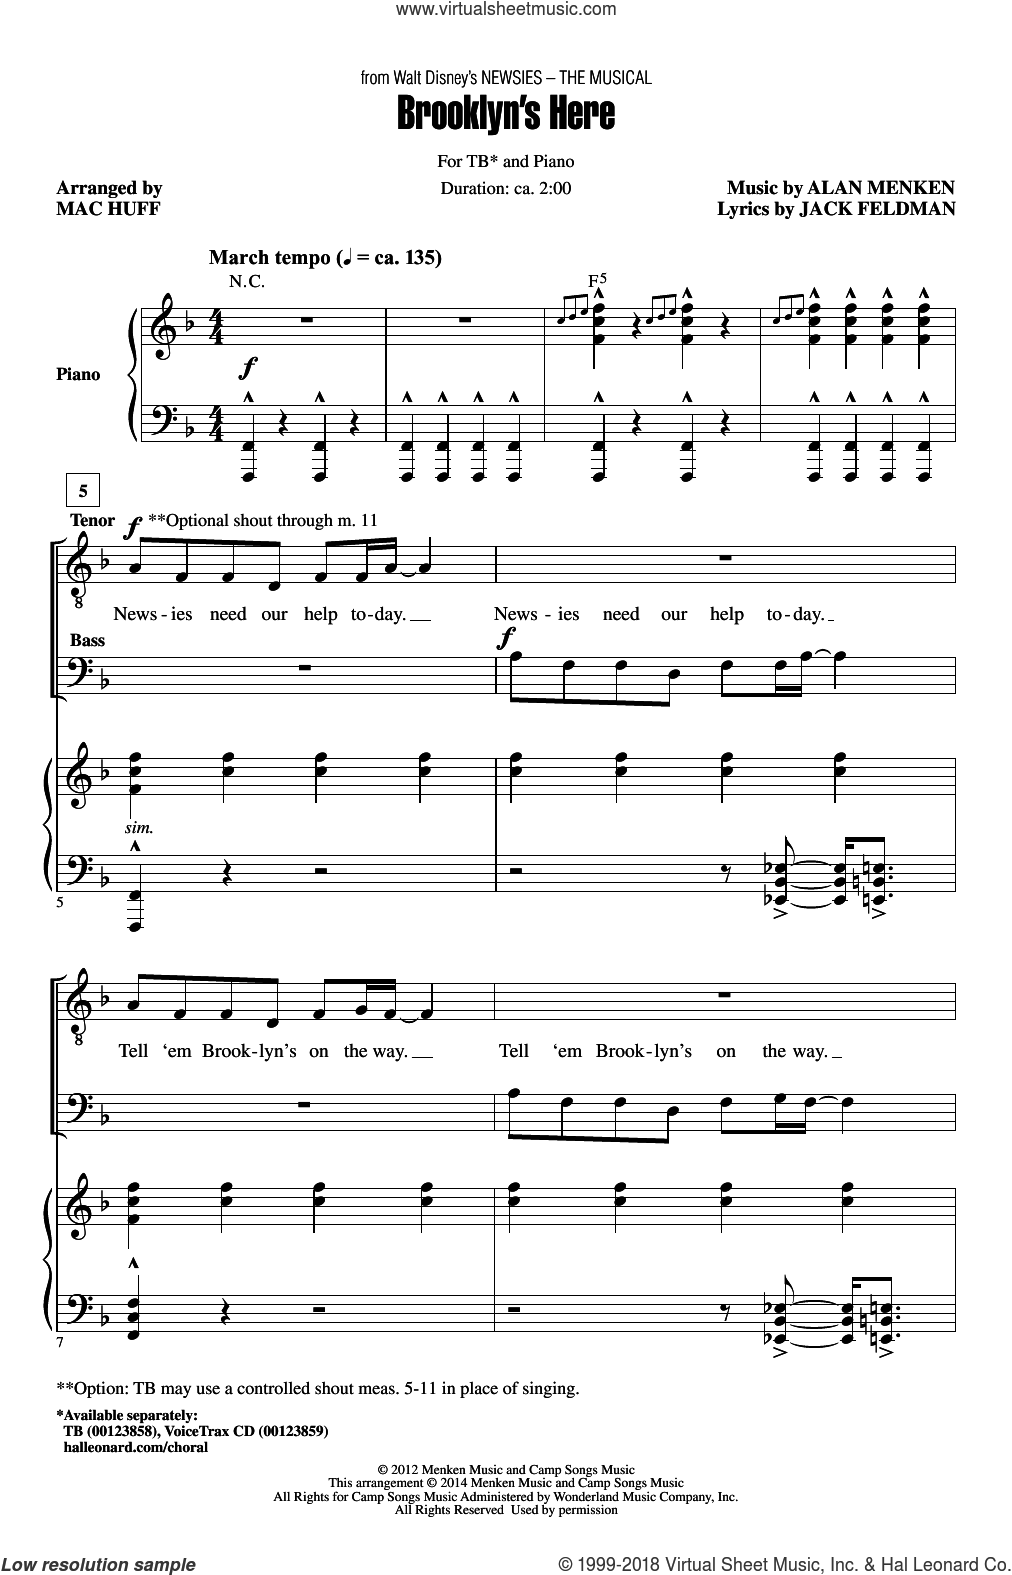 Brooklyn's Here sheet music for choir and piano (TB) by Mac Huff